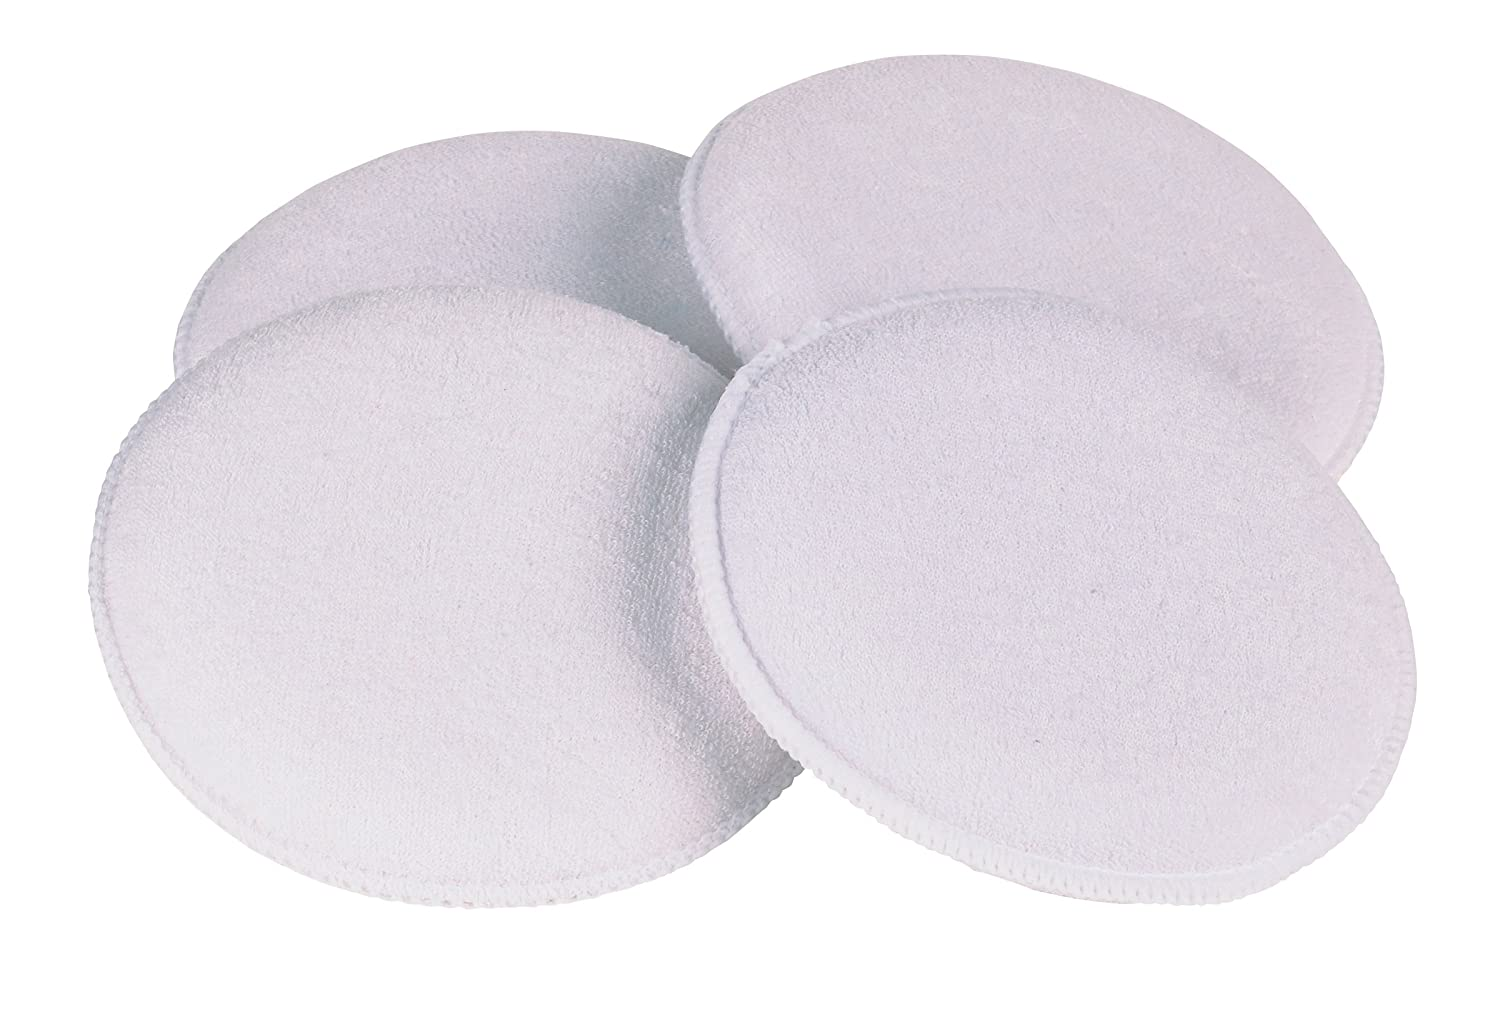 Carrand 40119 Terry Cloth 5' Round Applicator Pad, 4 Pack Carrand Co. Inc.